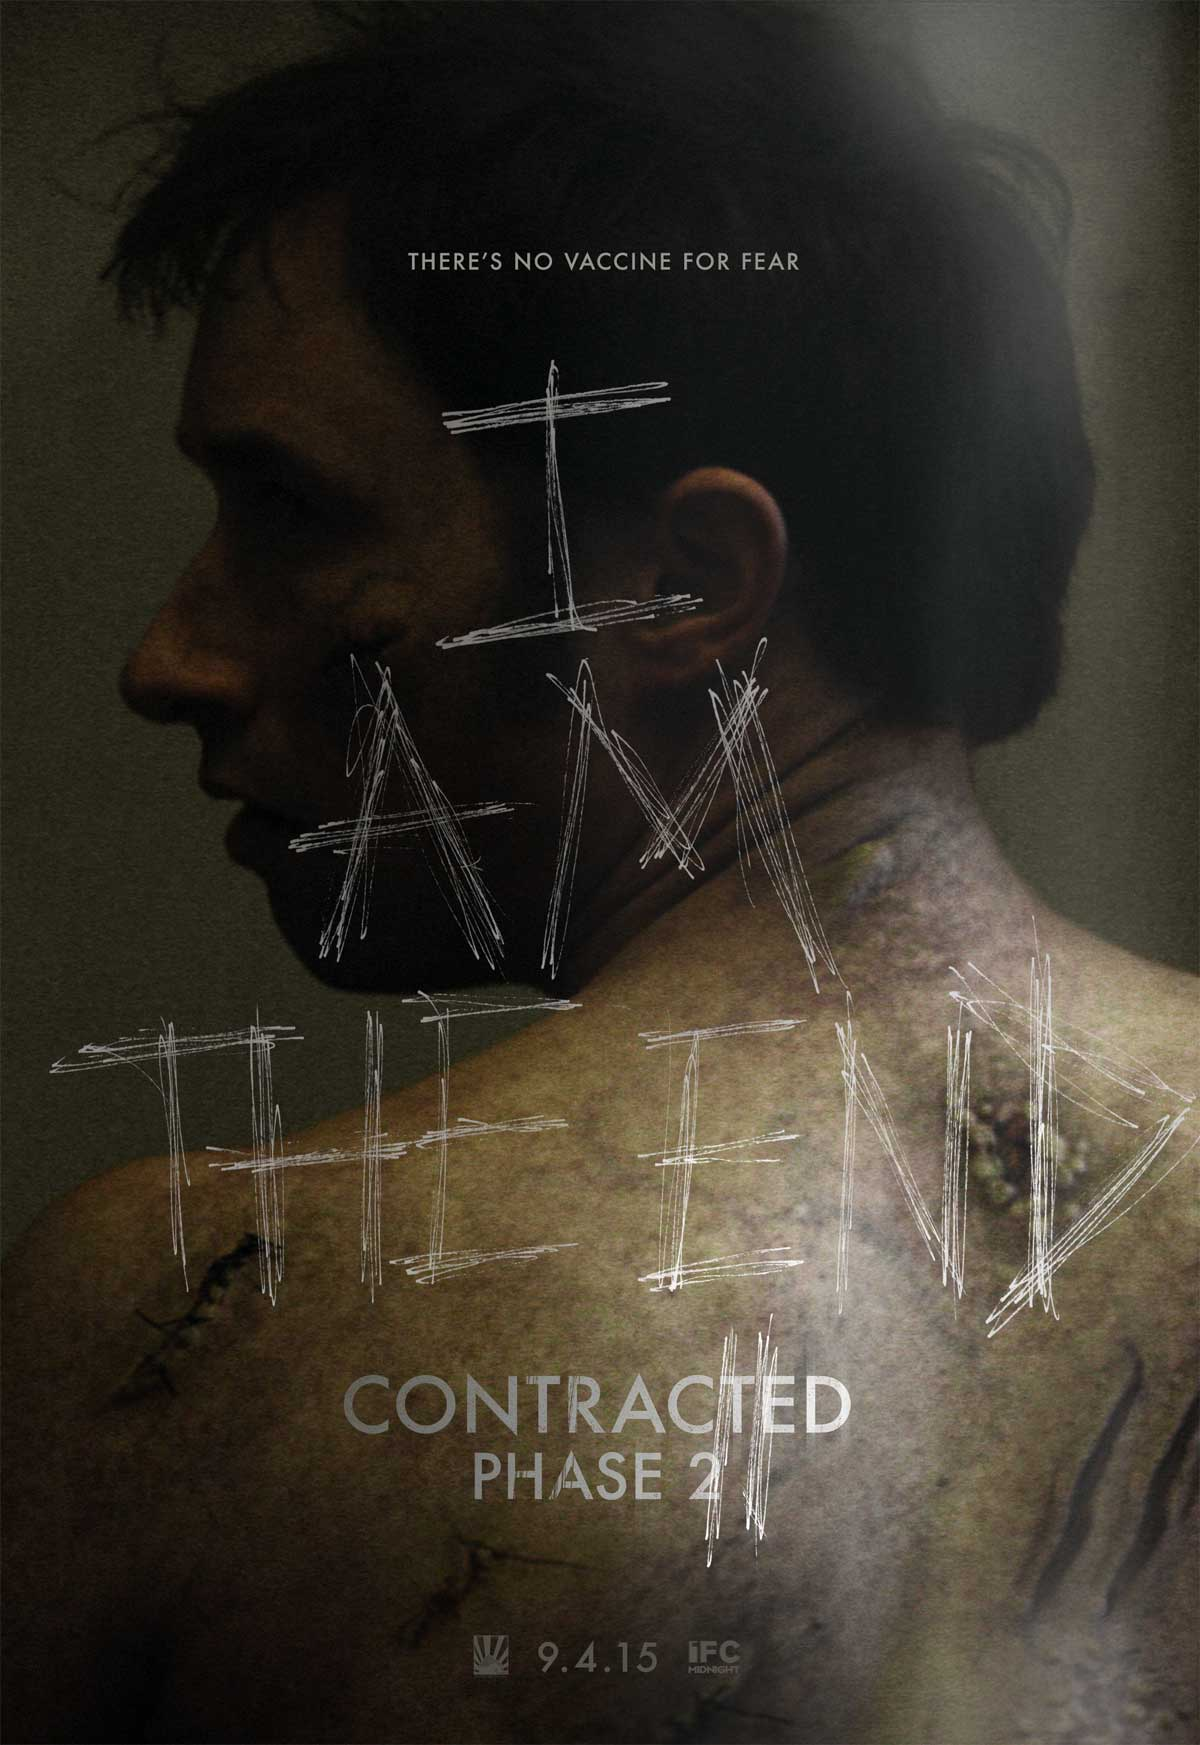 contracted phase 2